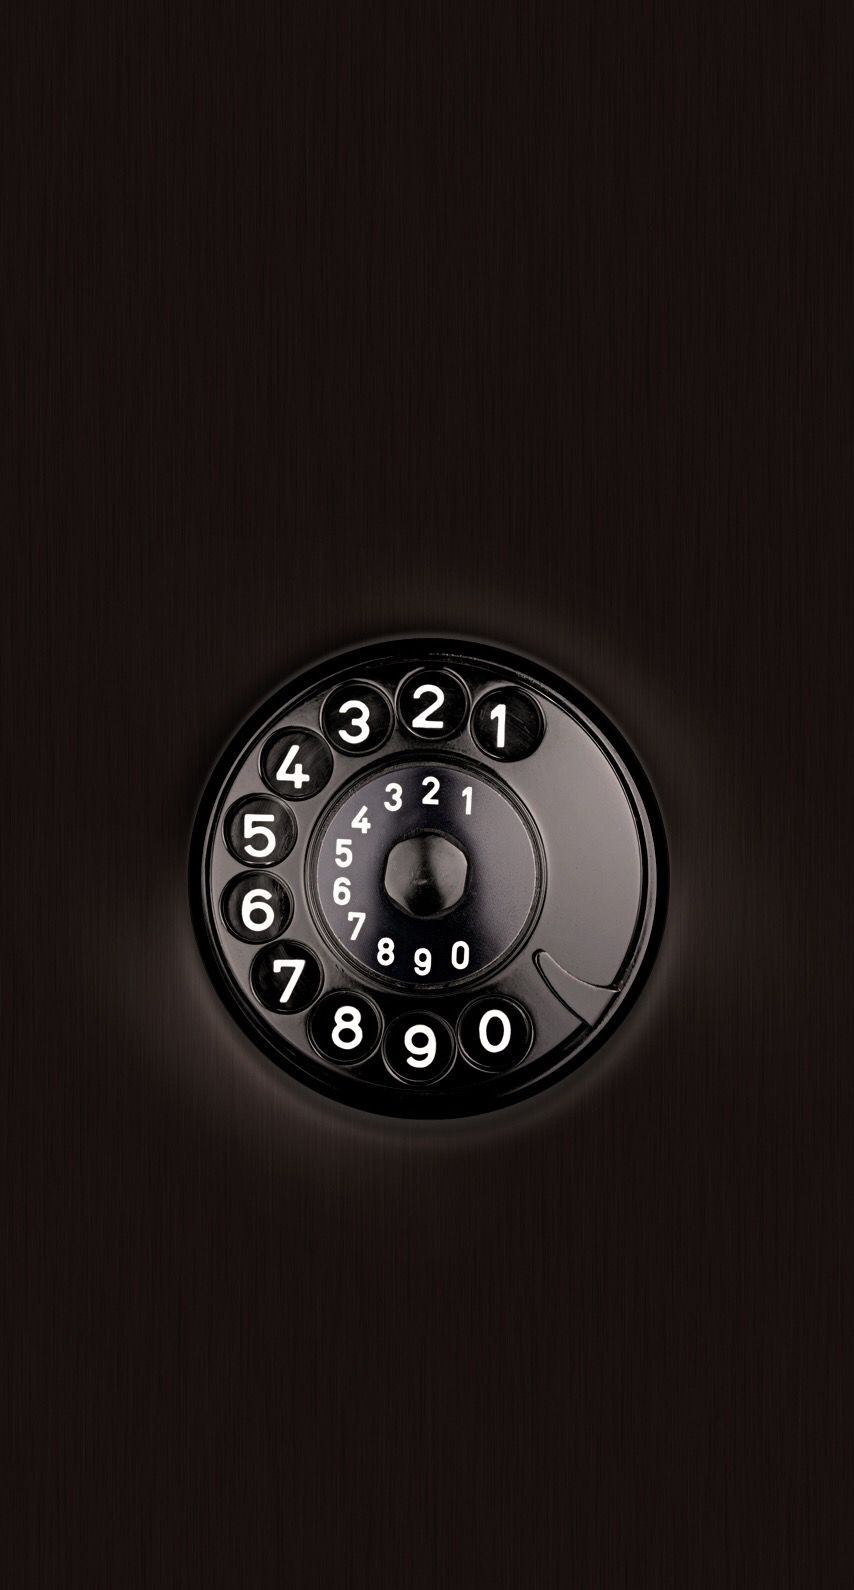 Black And White Phone Dial Samsung Wallpaper Cellphone Wallpaper Android Wallpaper